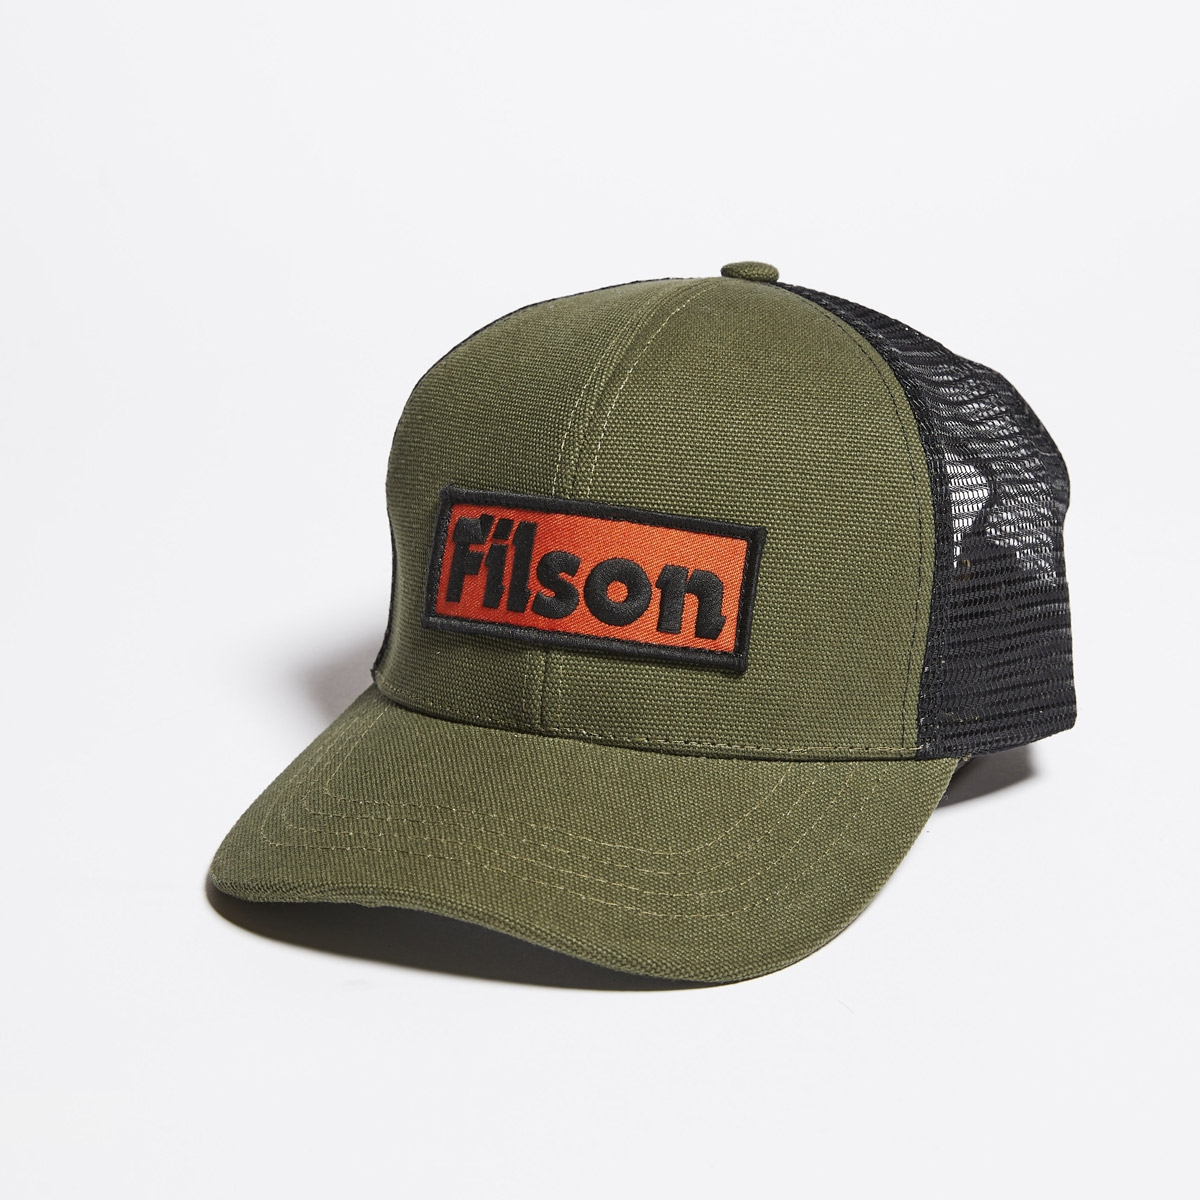 Filson Mesh Logger Cap-Black, Robustes 6 Panel Logger Cap mit Mesh Panels für optimale Belüftung